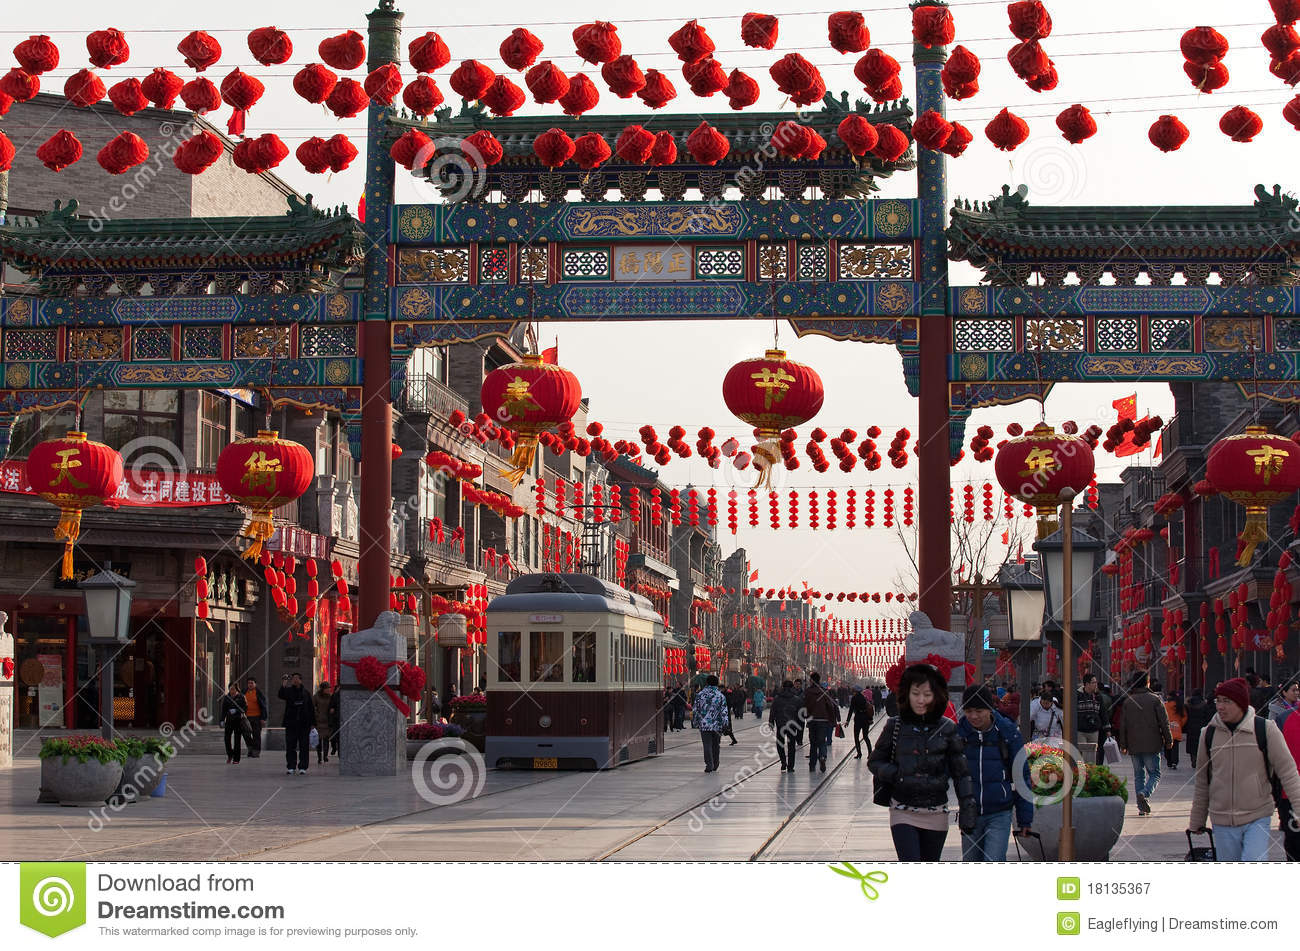 Qianmen Street in Beijing, China